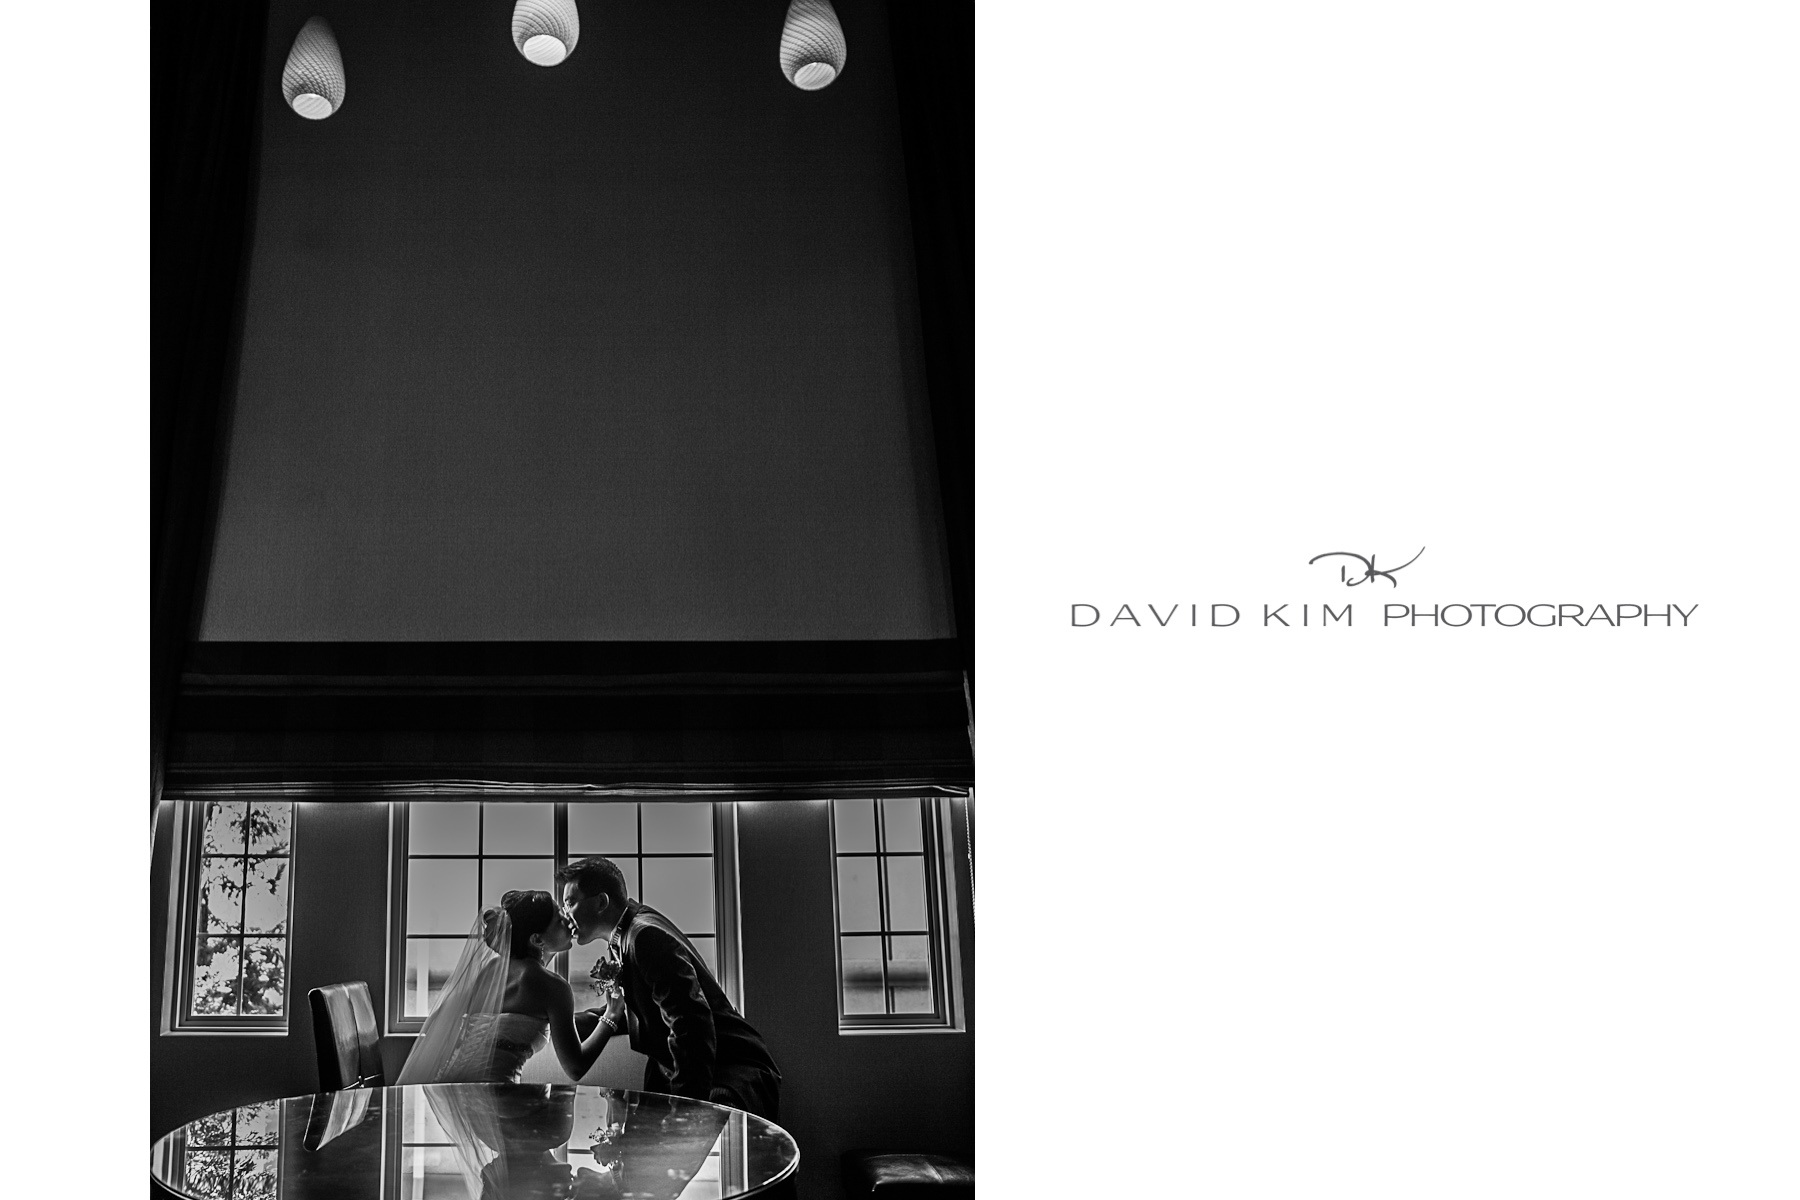 Joanna-Dave-012-12-san-francisco-wedding-photography.jpg